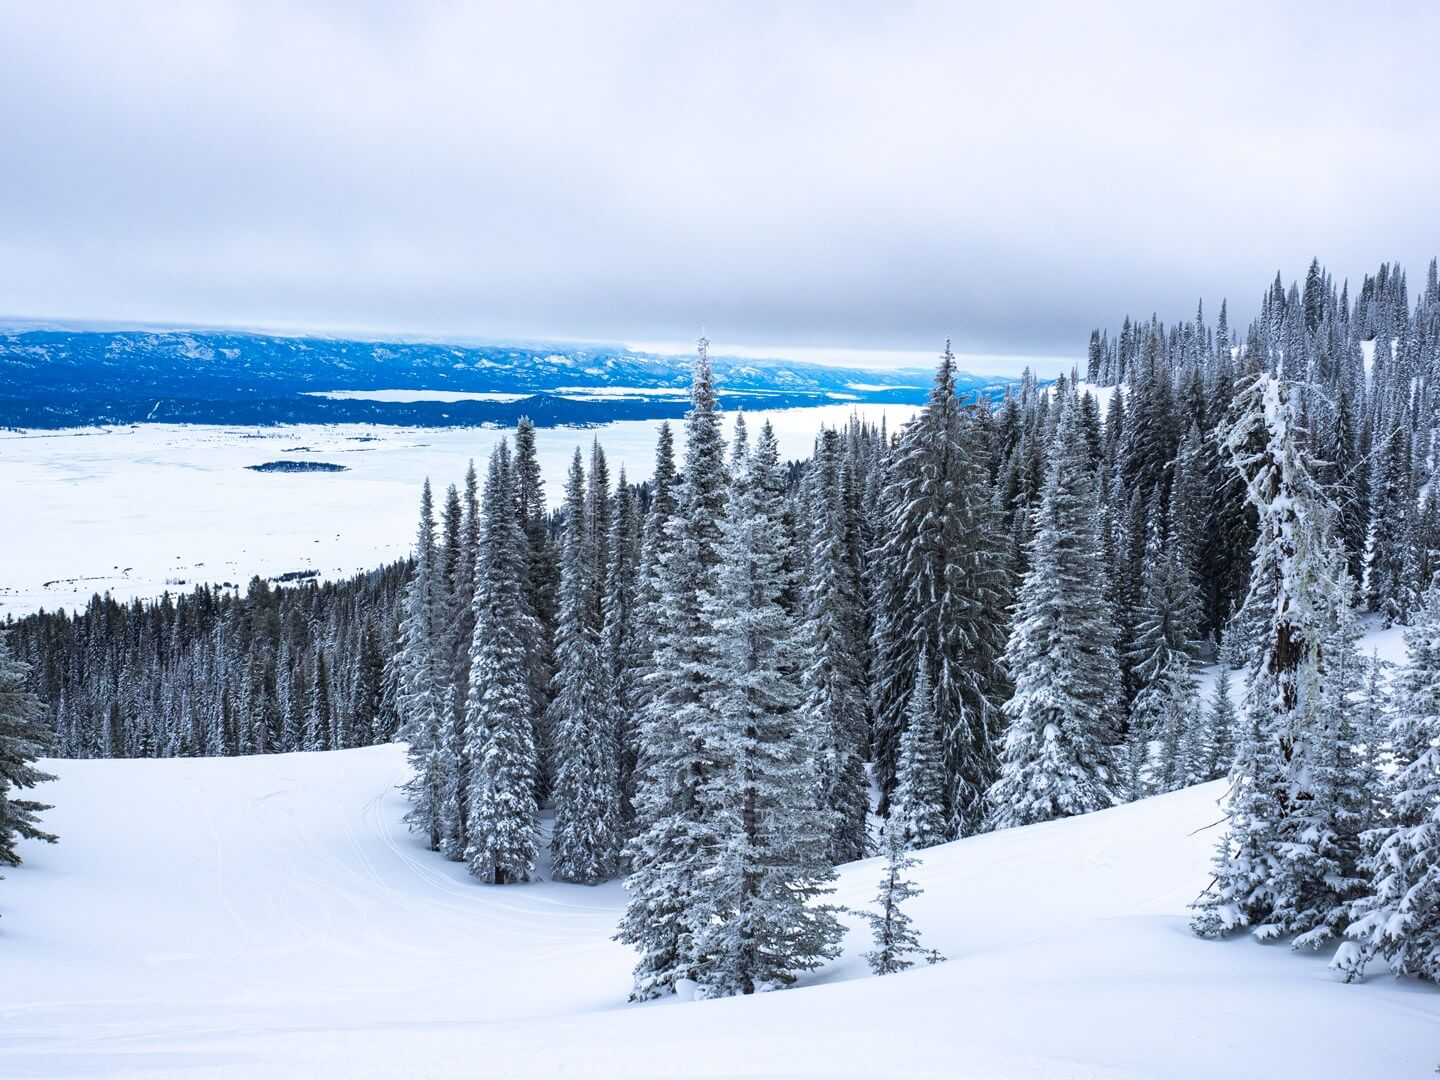 Cascade Lake near Donnelly Idaho during winter as viewed from Tamarack Resort